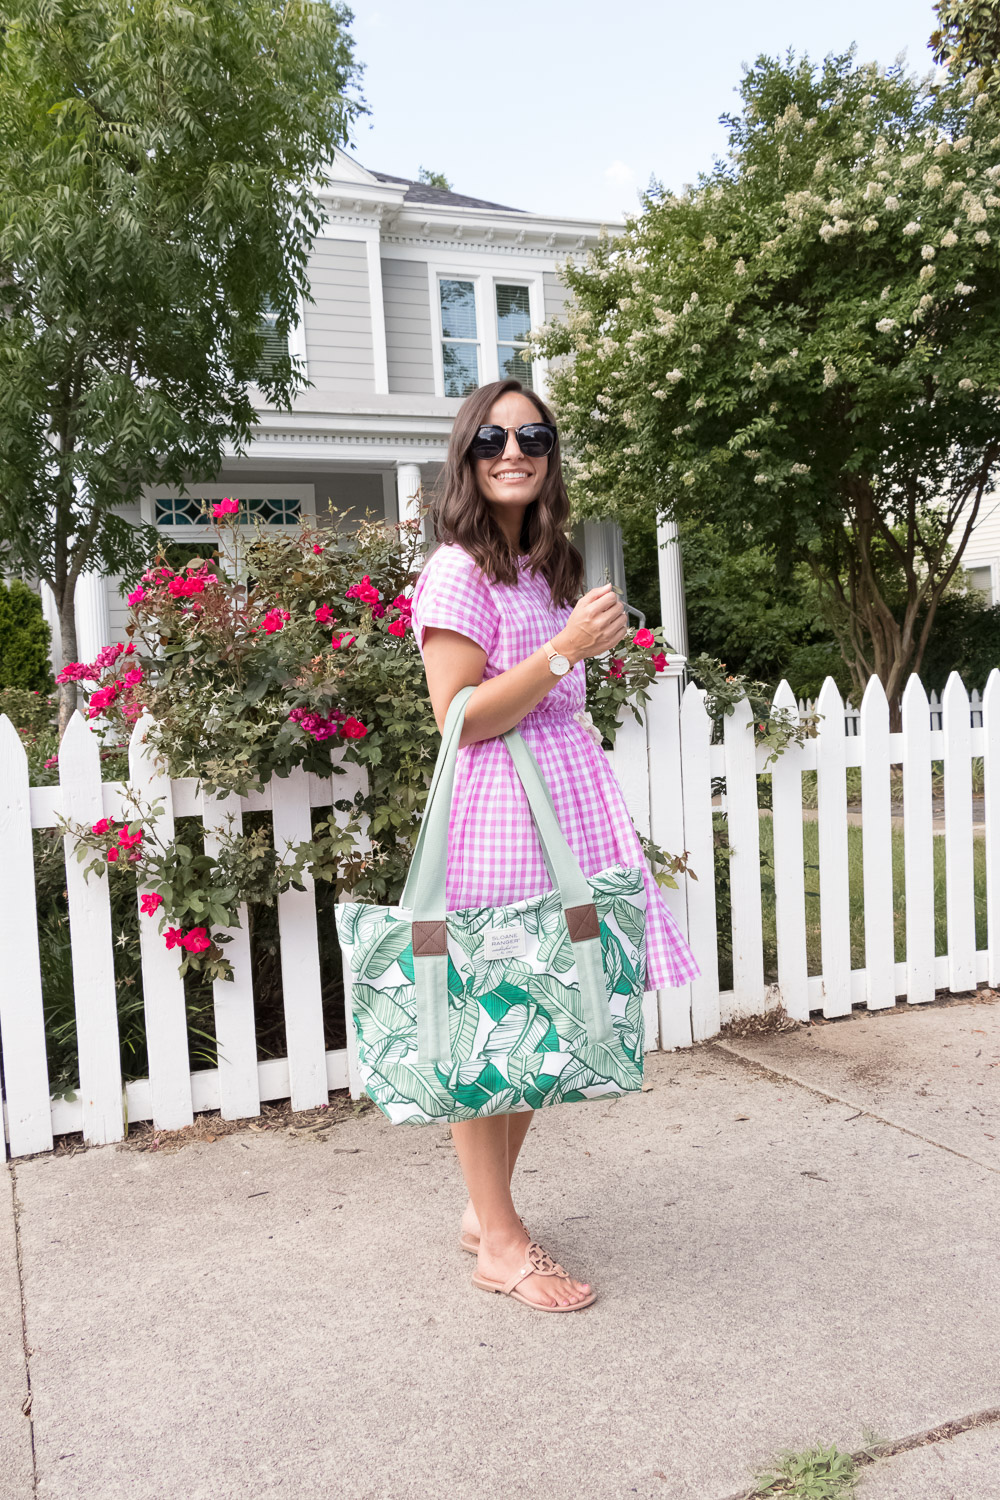 Pumps & Push-Ups blogger brooke, wearing a J. Crew Factory gingham dress